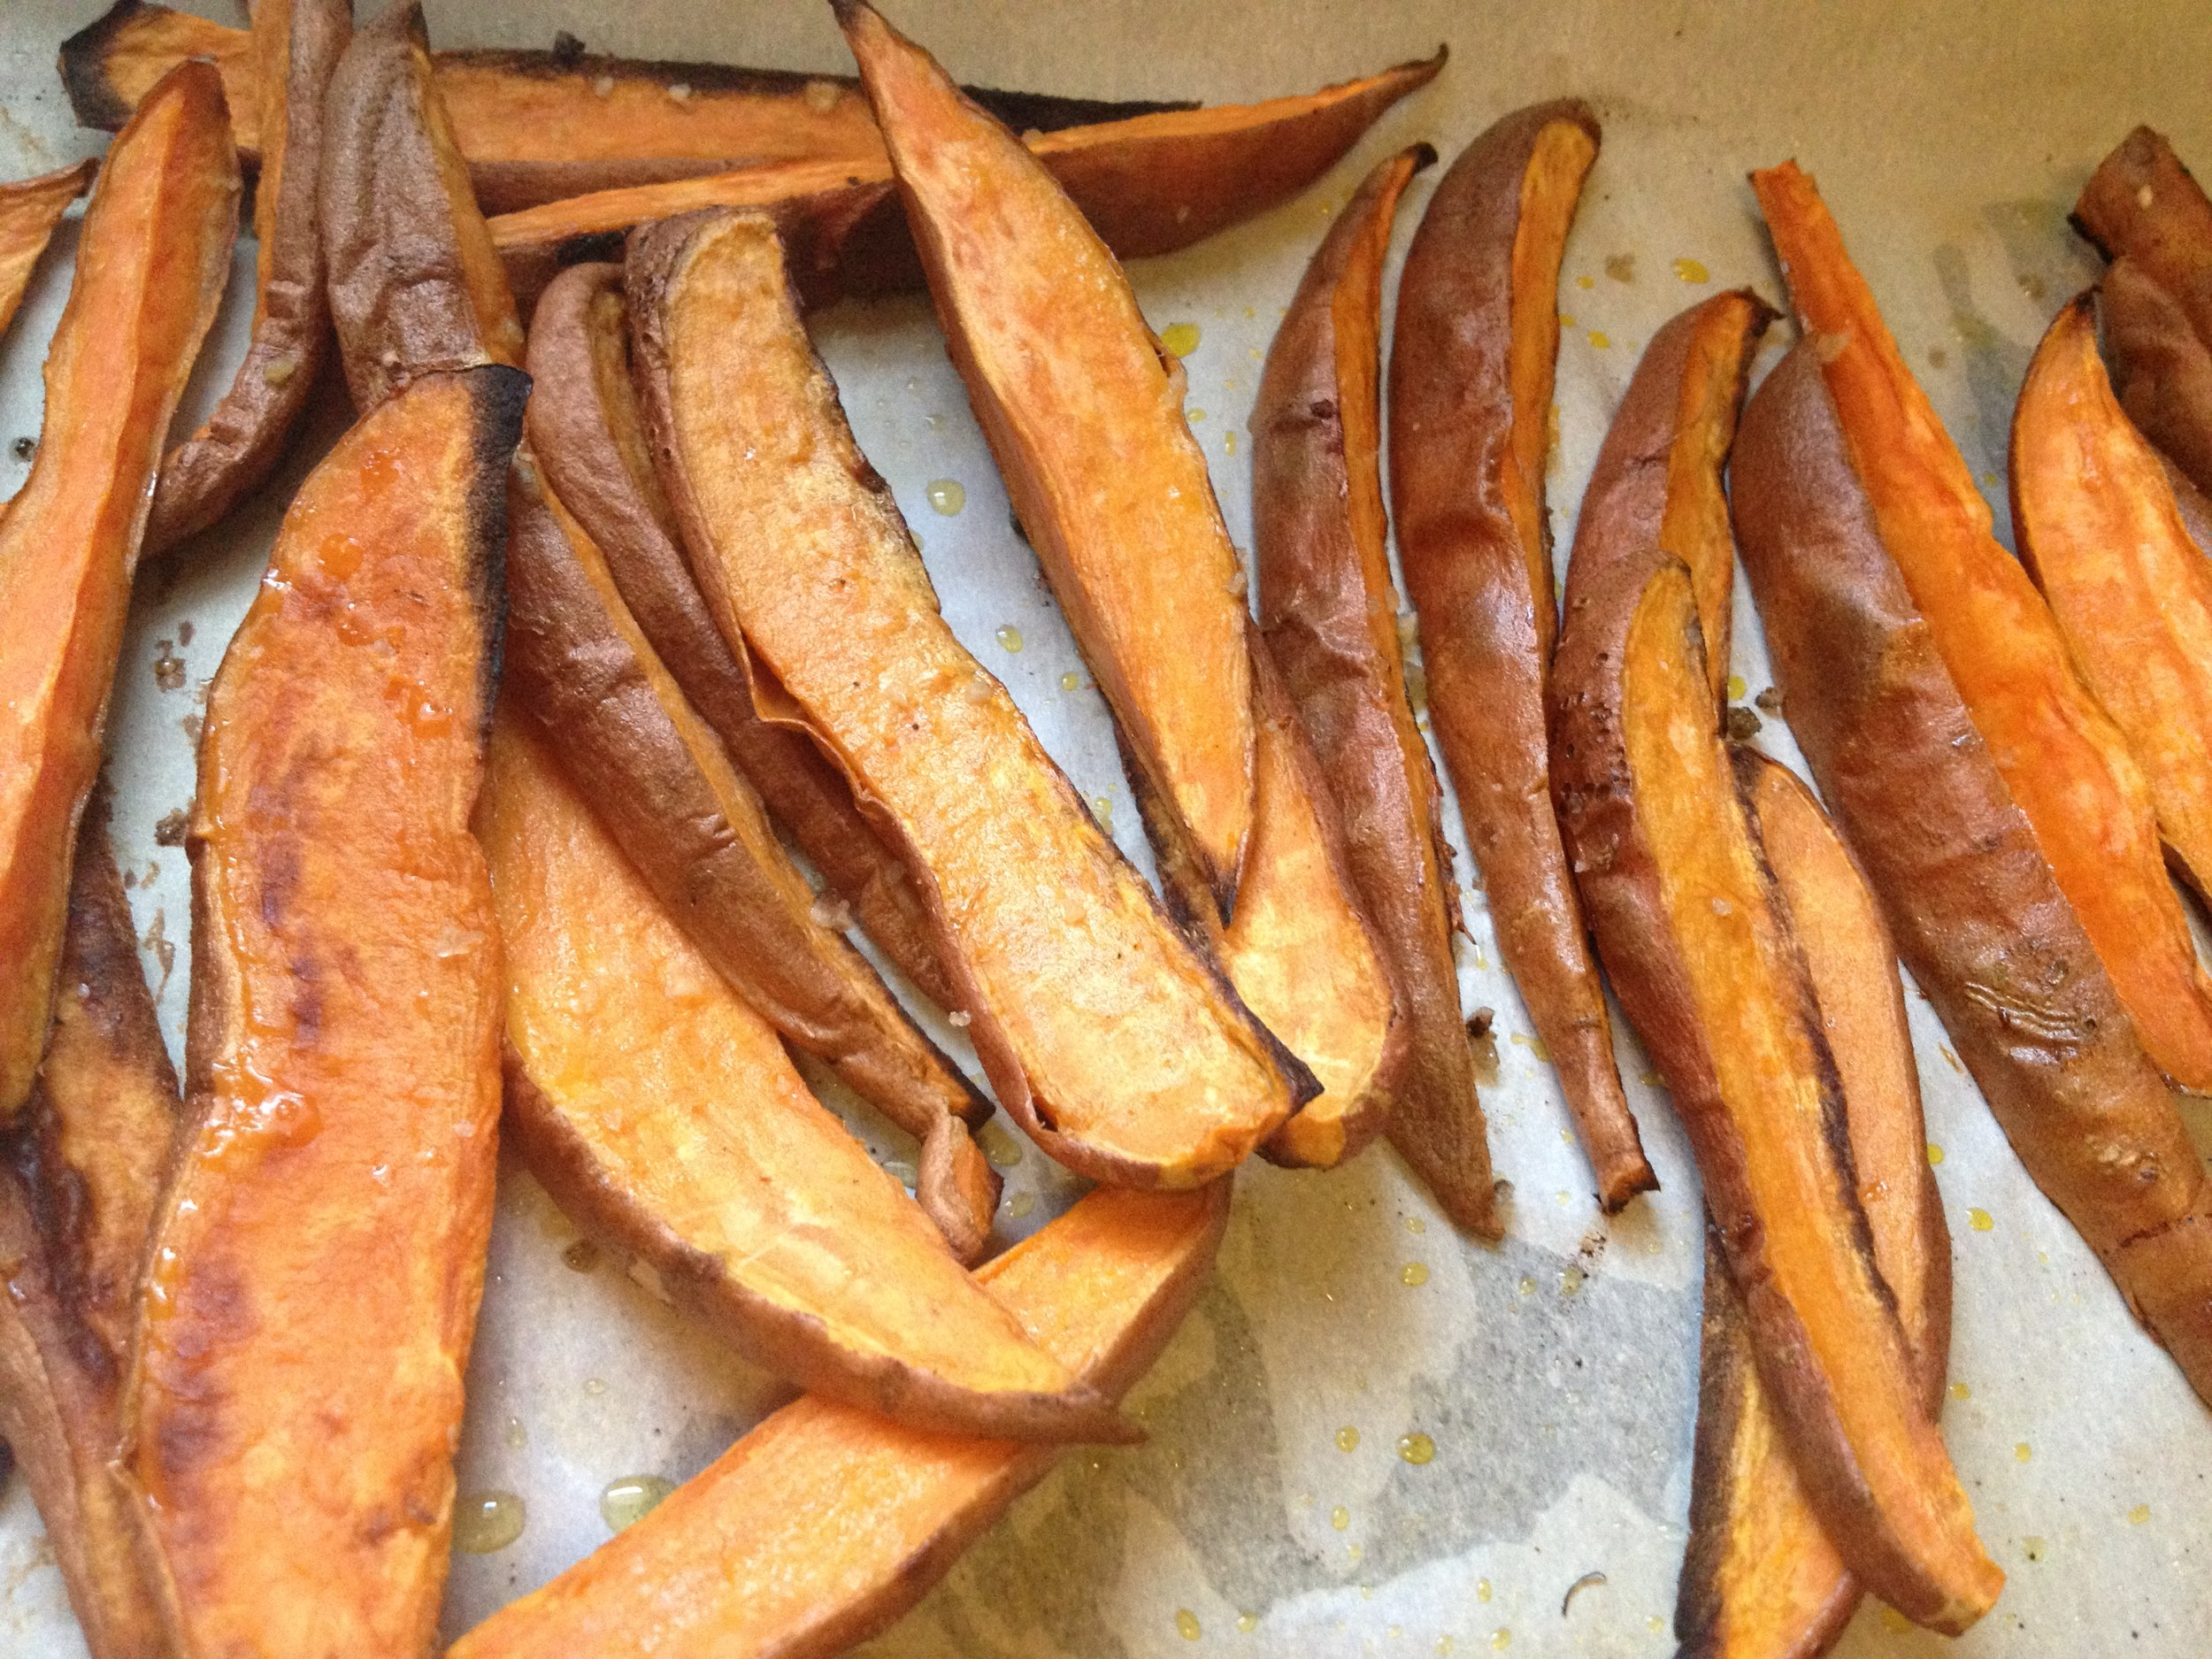 Baked Sweet Potato Fries, right out of the oven